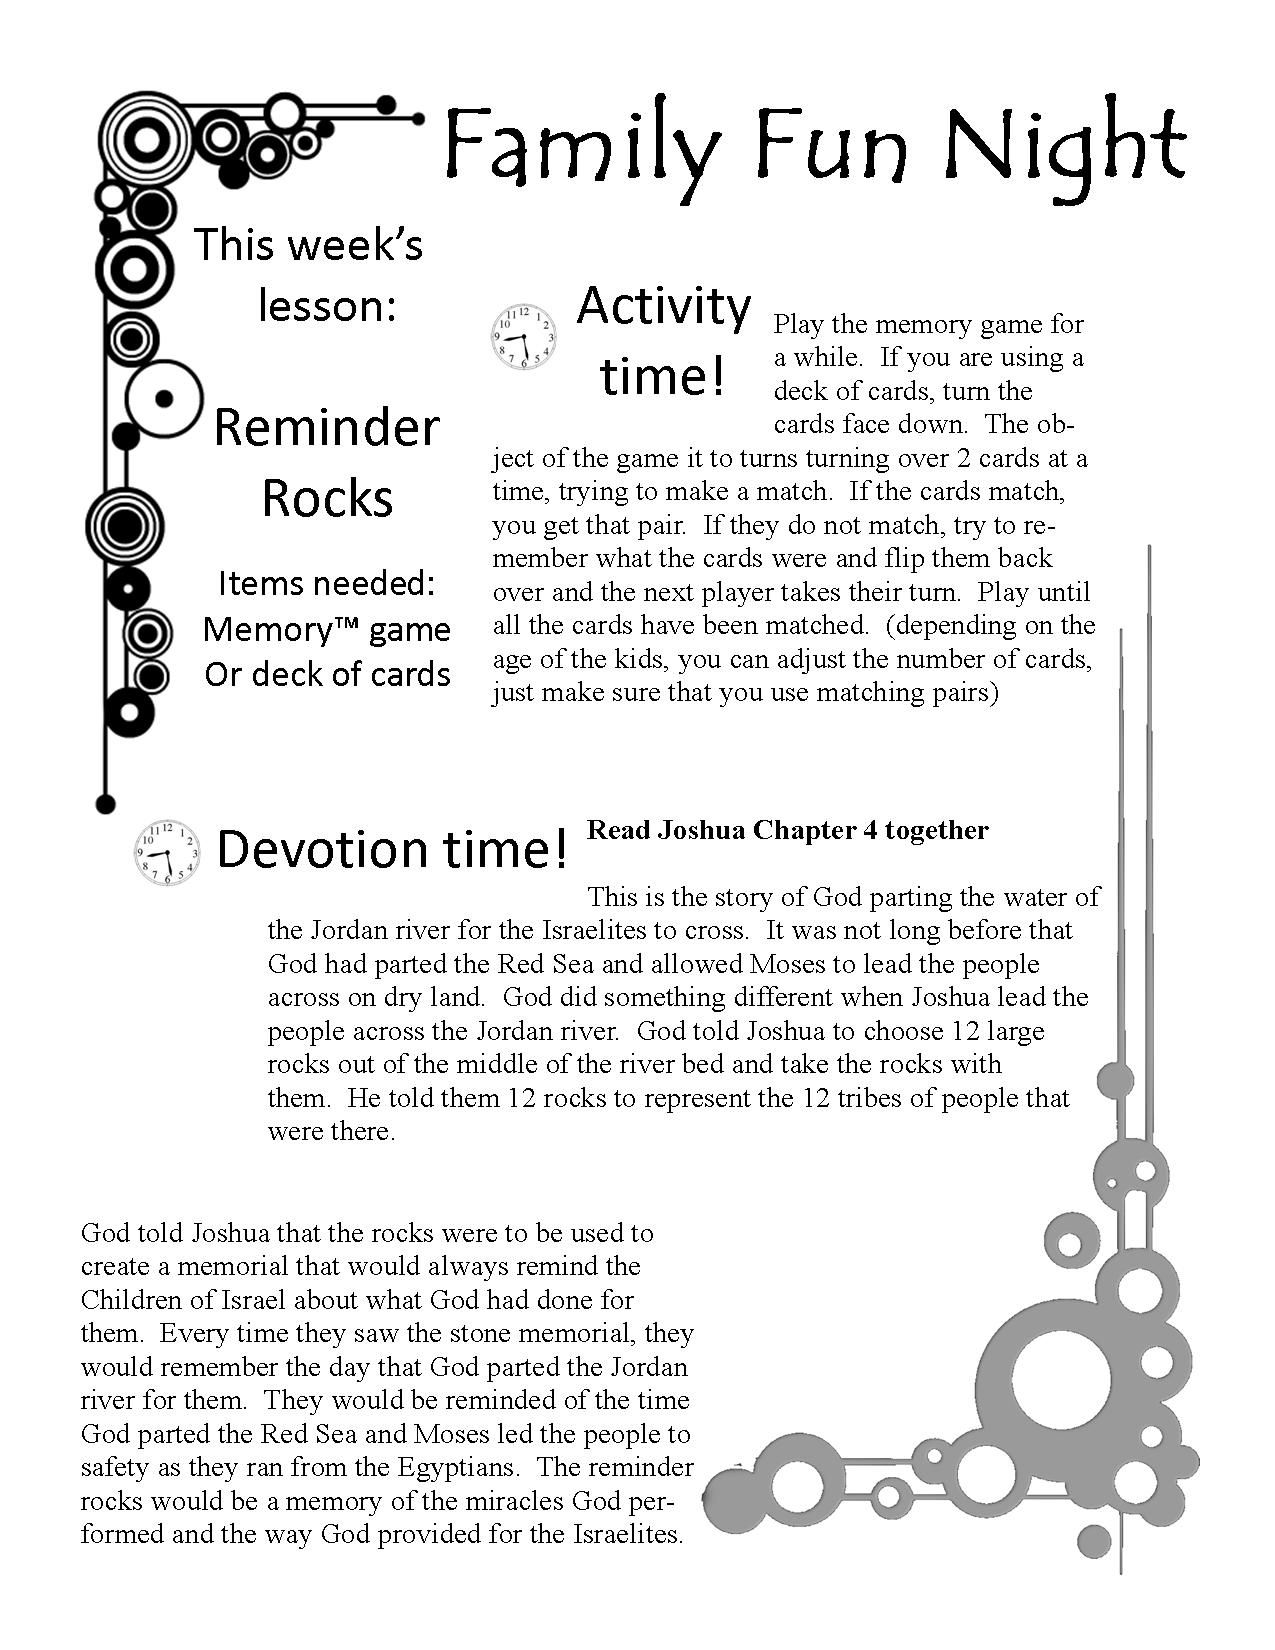 Free Family Fun Devotion Time Printable Game Lesson